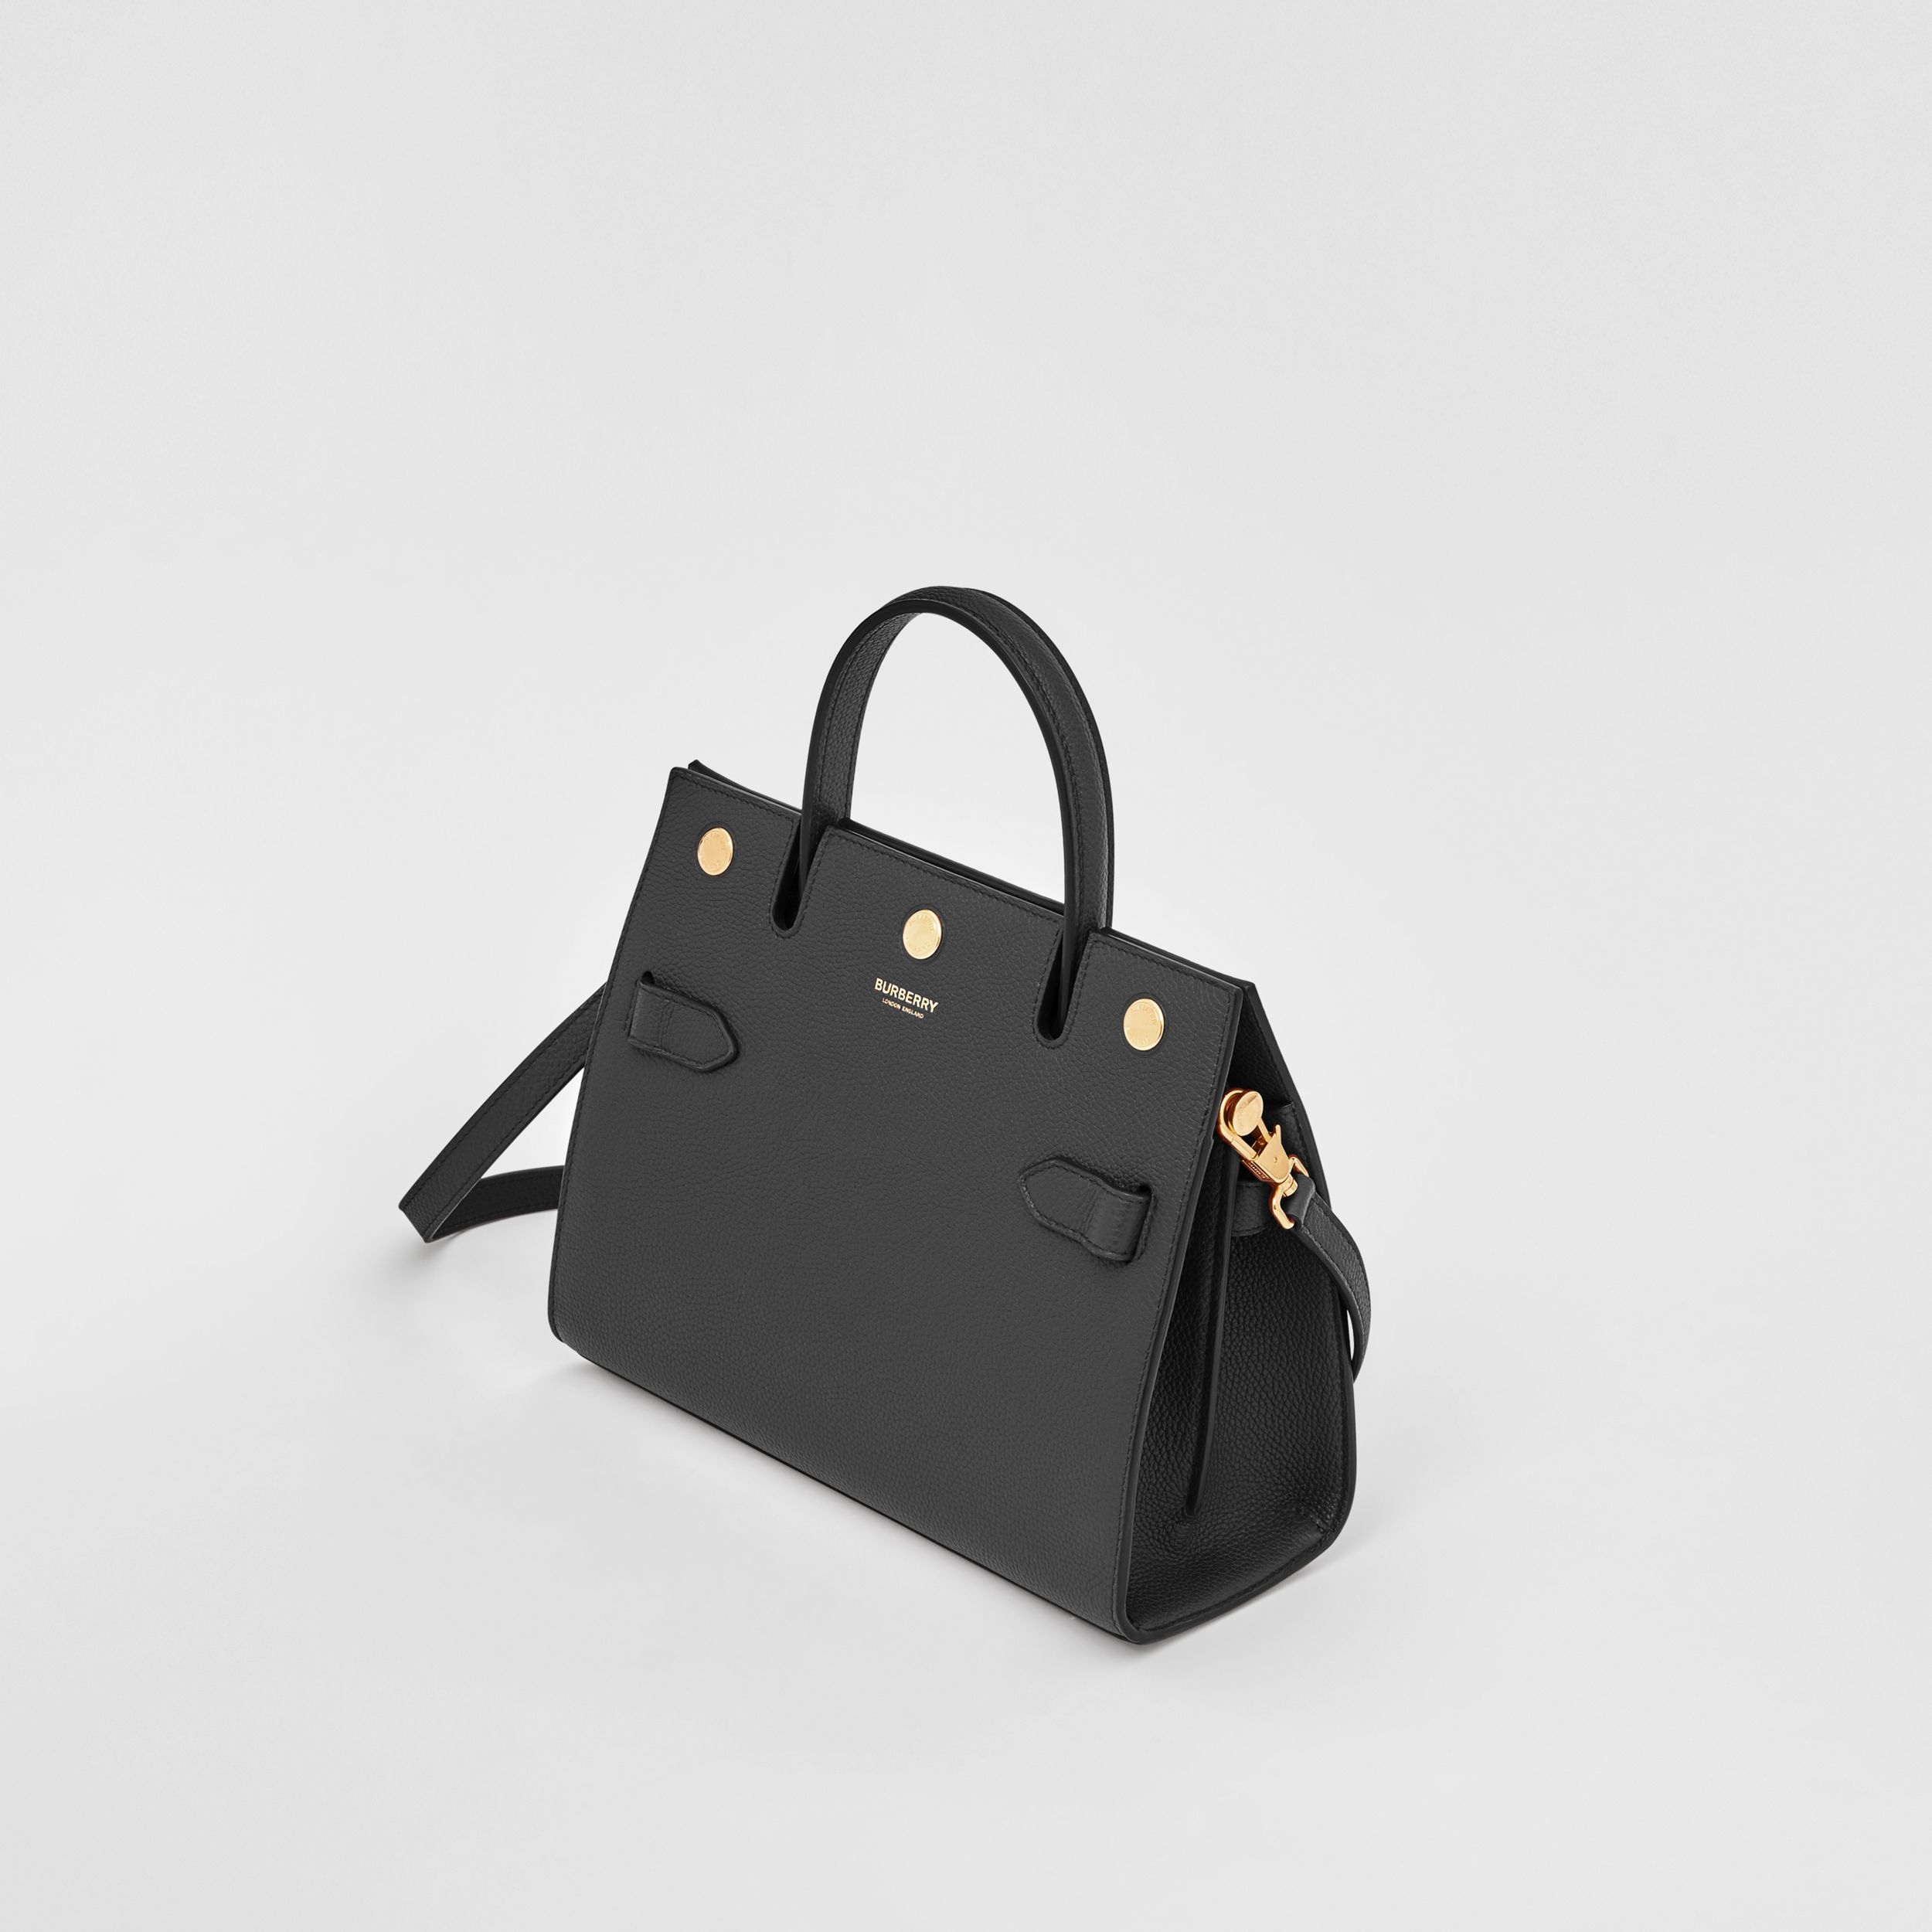 Mini Leather Title Bag in Black - Women | Burberry - 4